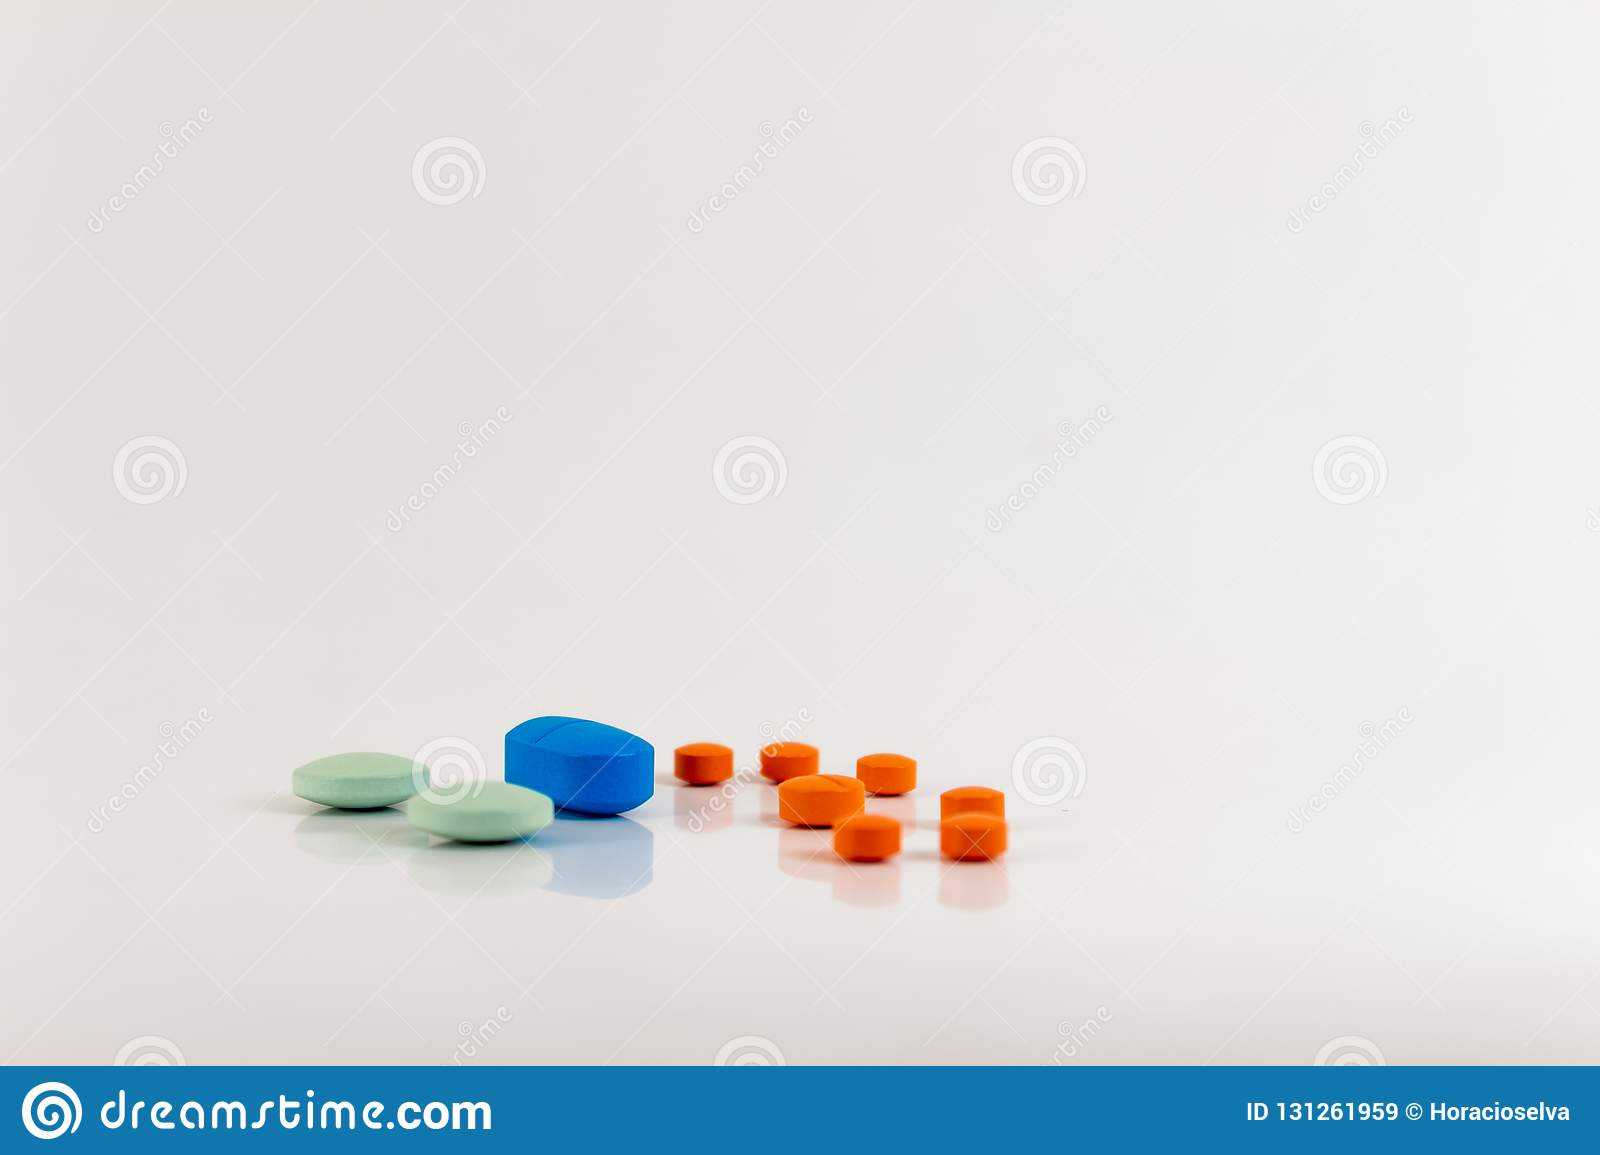 Drugs In The Form Of Pills Of Different Sizes, Shapes And